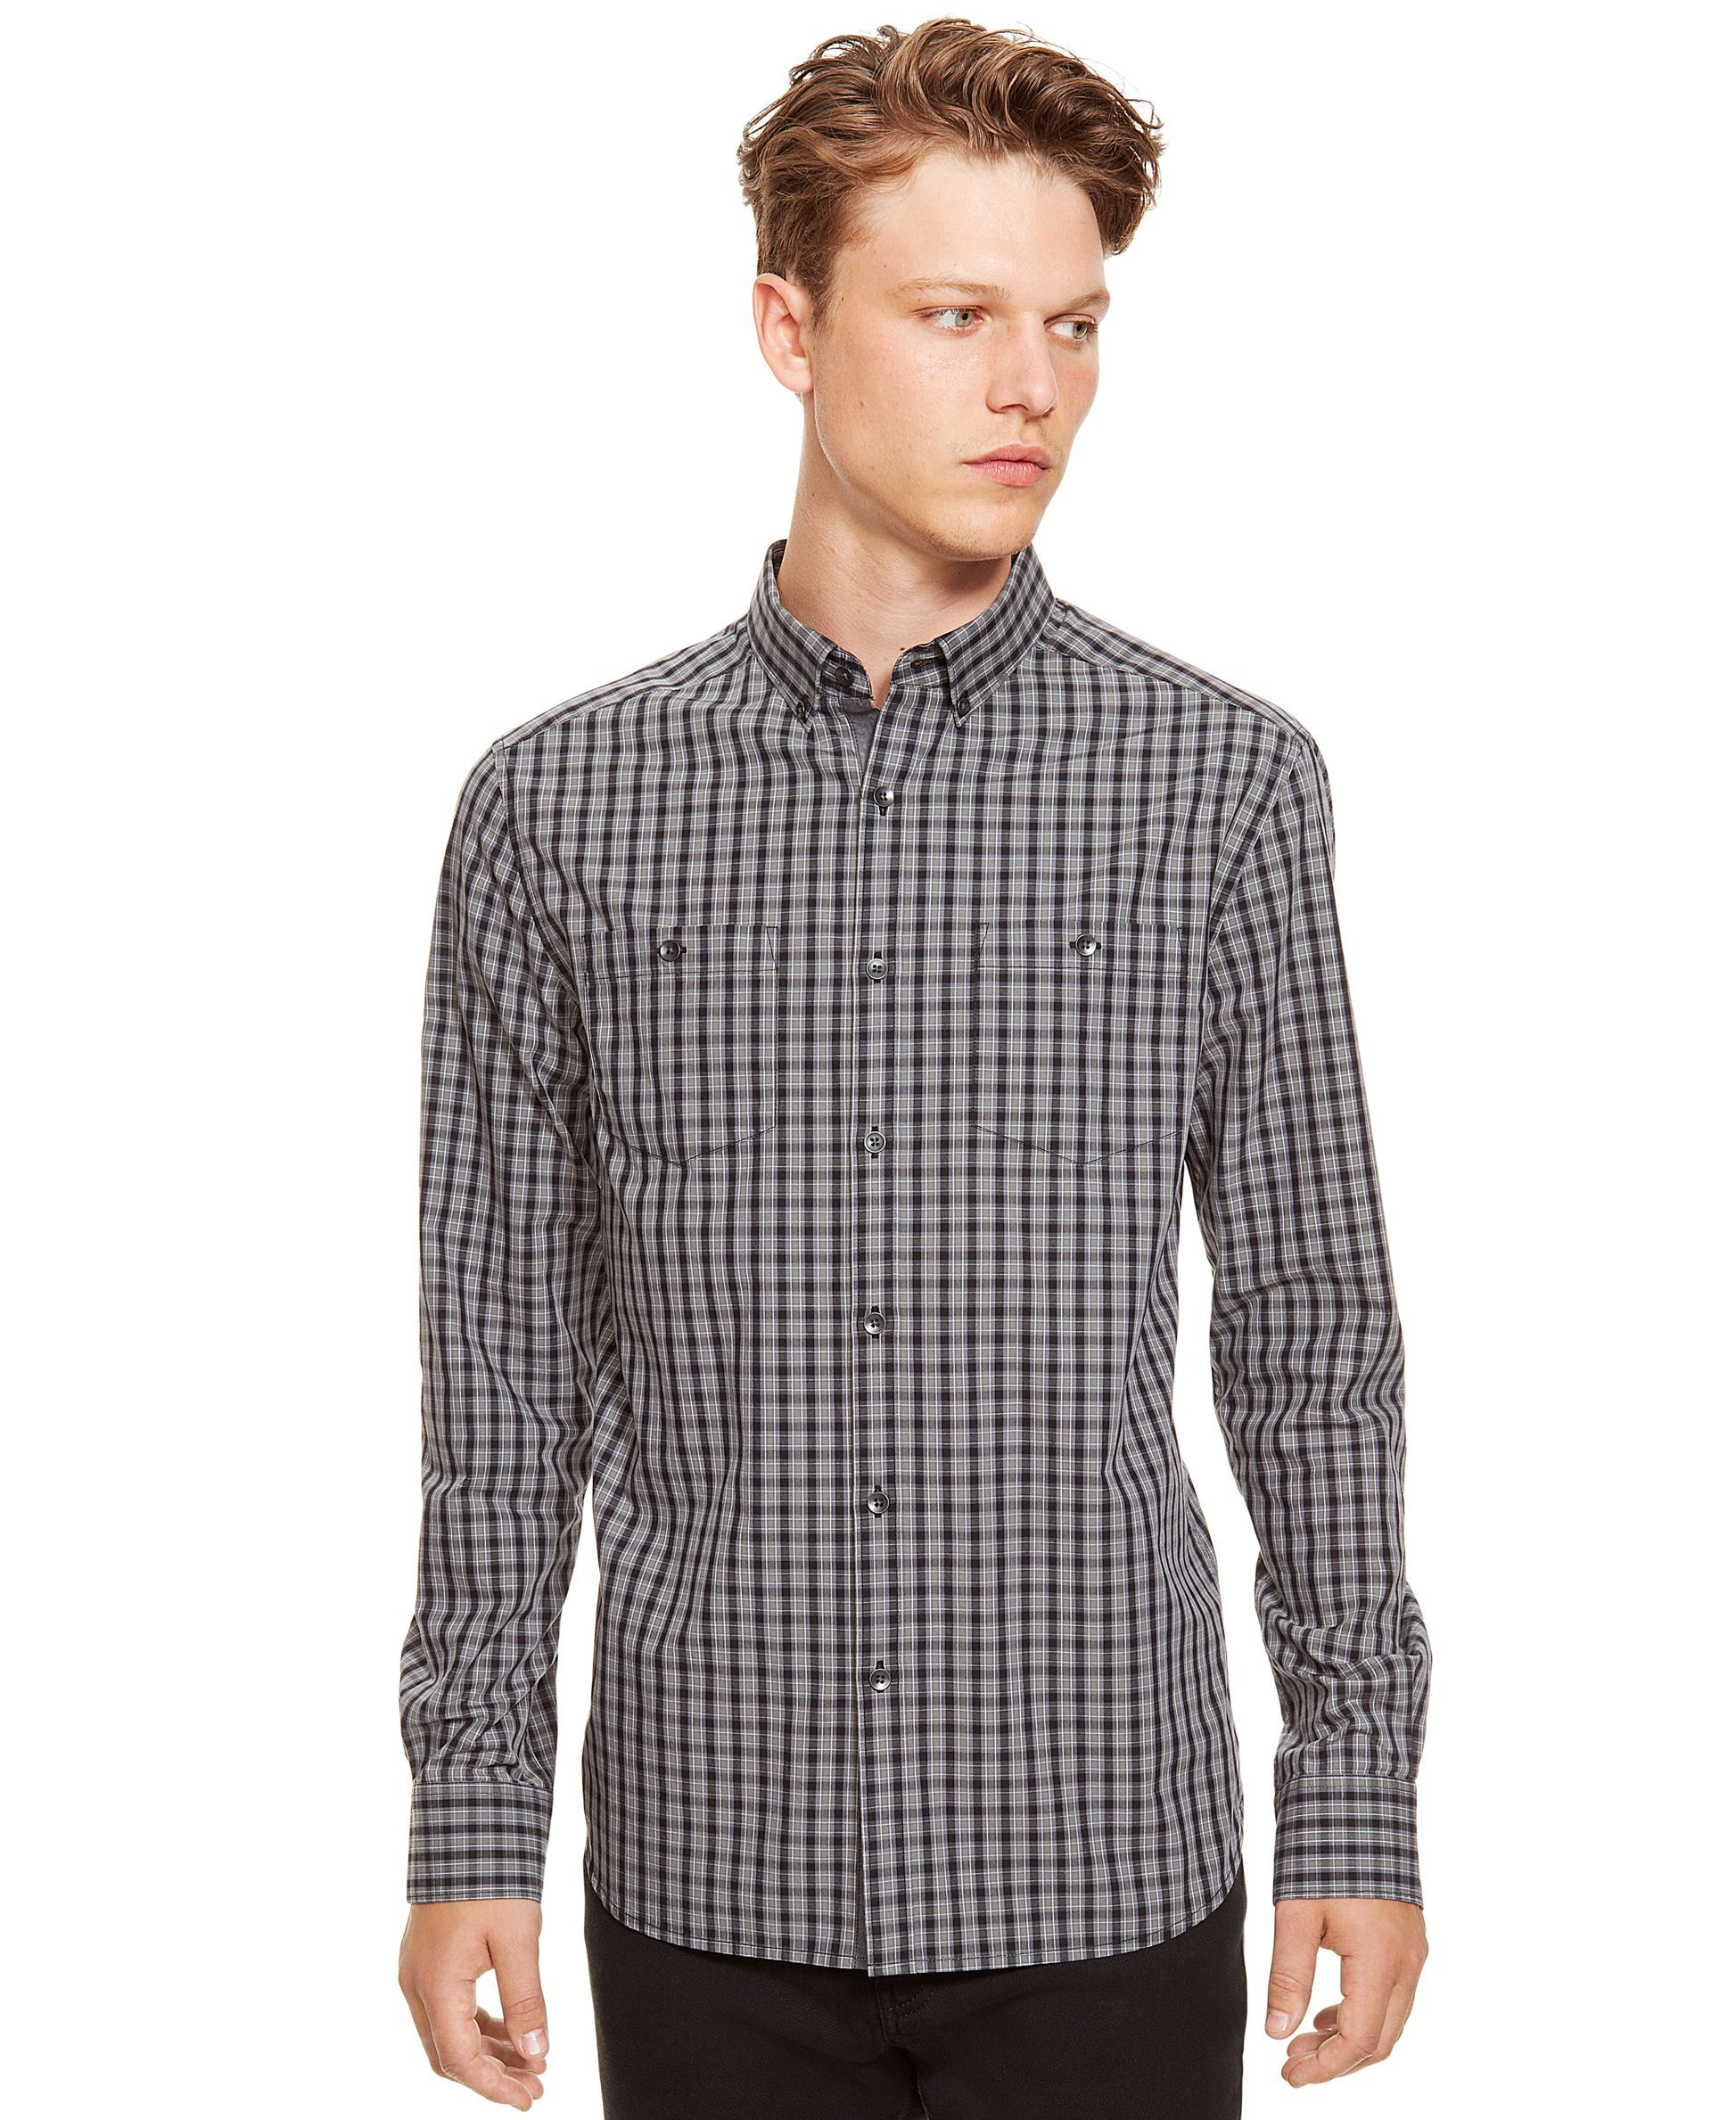 Kenneth Cole REACTION Long-Sleeve Micro-Check Shirt